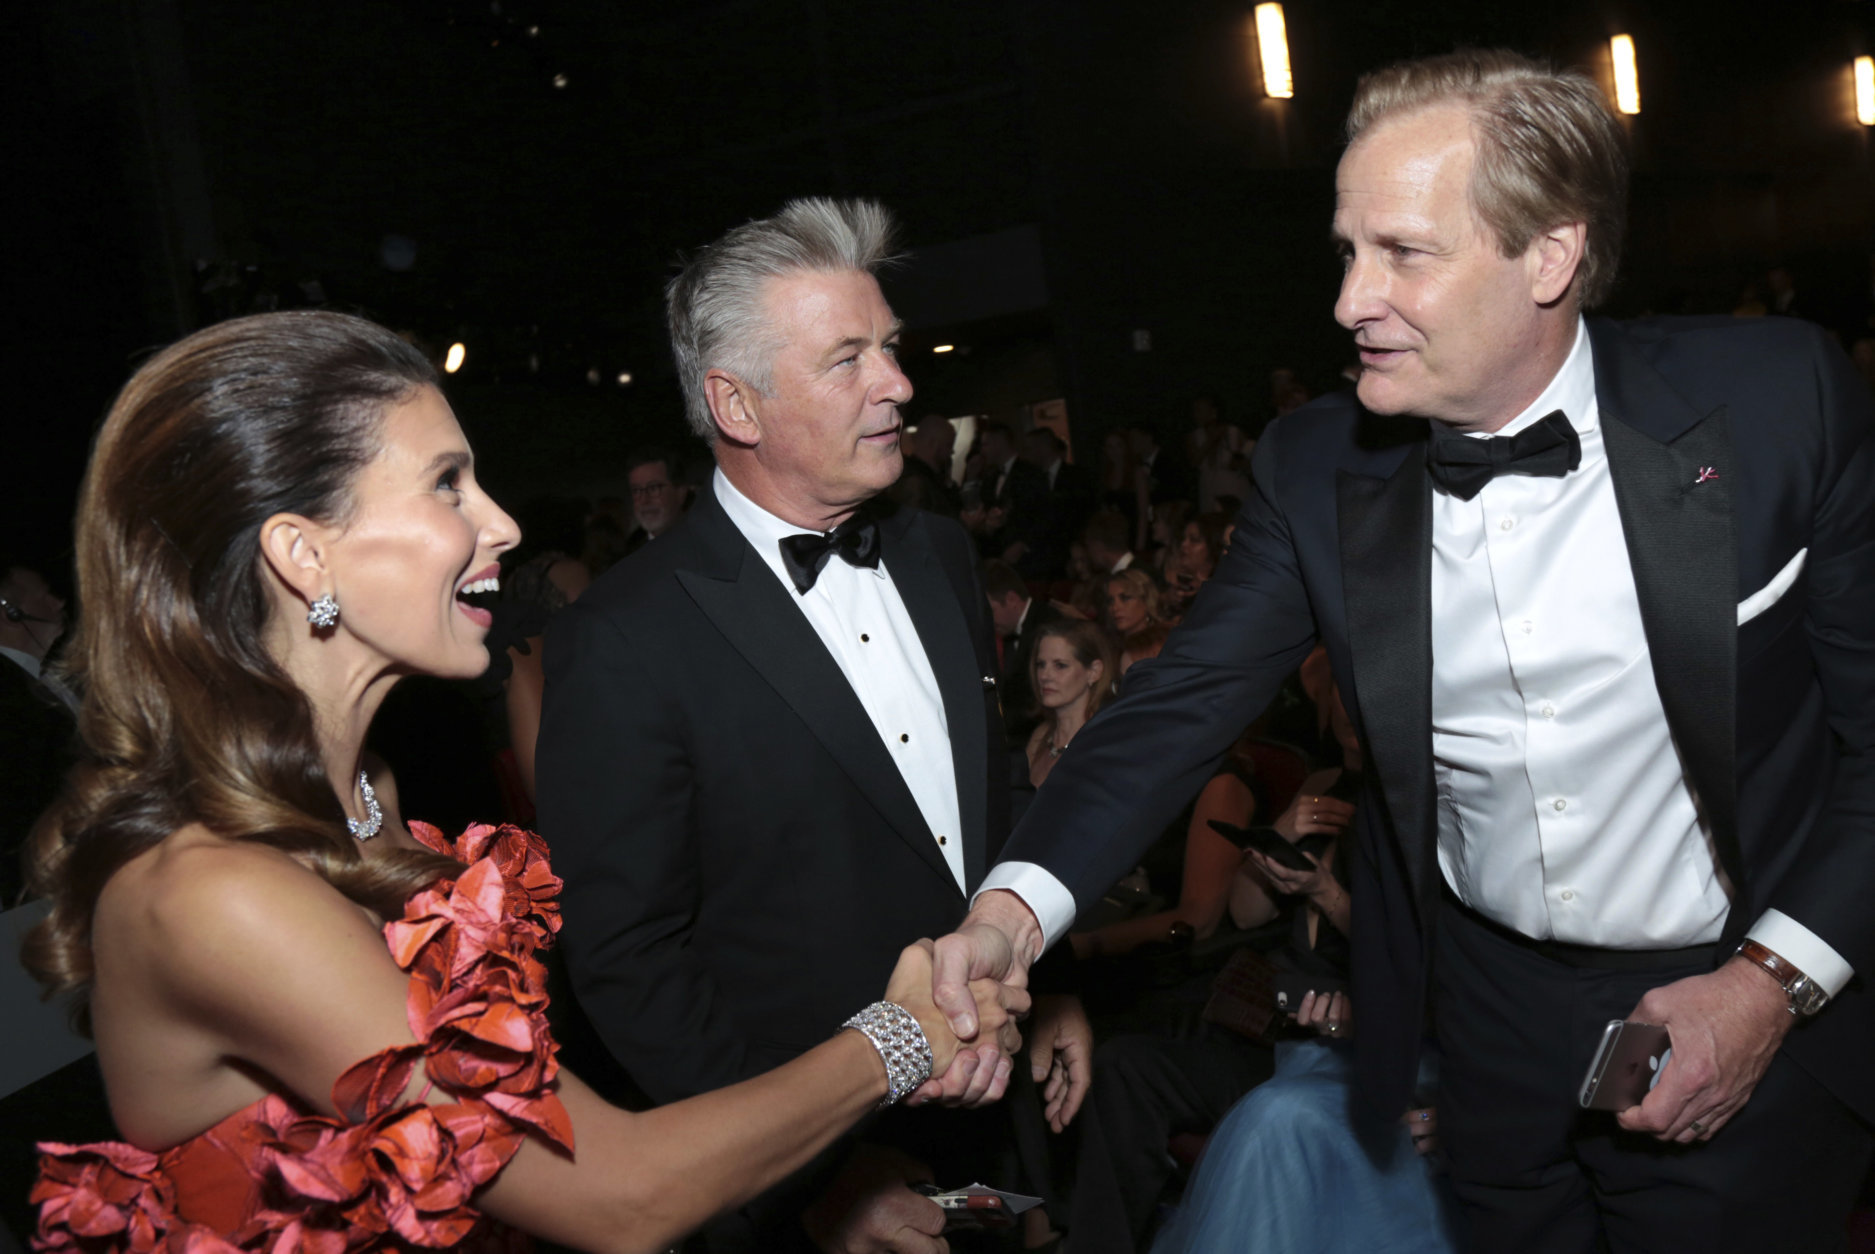 IMAGE DISTRIBUTED FOR THE TELEVISION ACADEMY - Hilaria Baldwin, Alec Baldwin and Jeff Daniels at the 70th Primetime Emmy Awards on Monday, Sept. 17, 2018, at the Microsoft Theater in Los Angeles. (Photo by Alex Berliner/Invision for the Television Academy/AP Images)